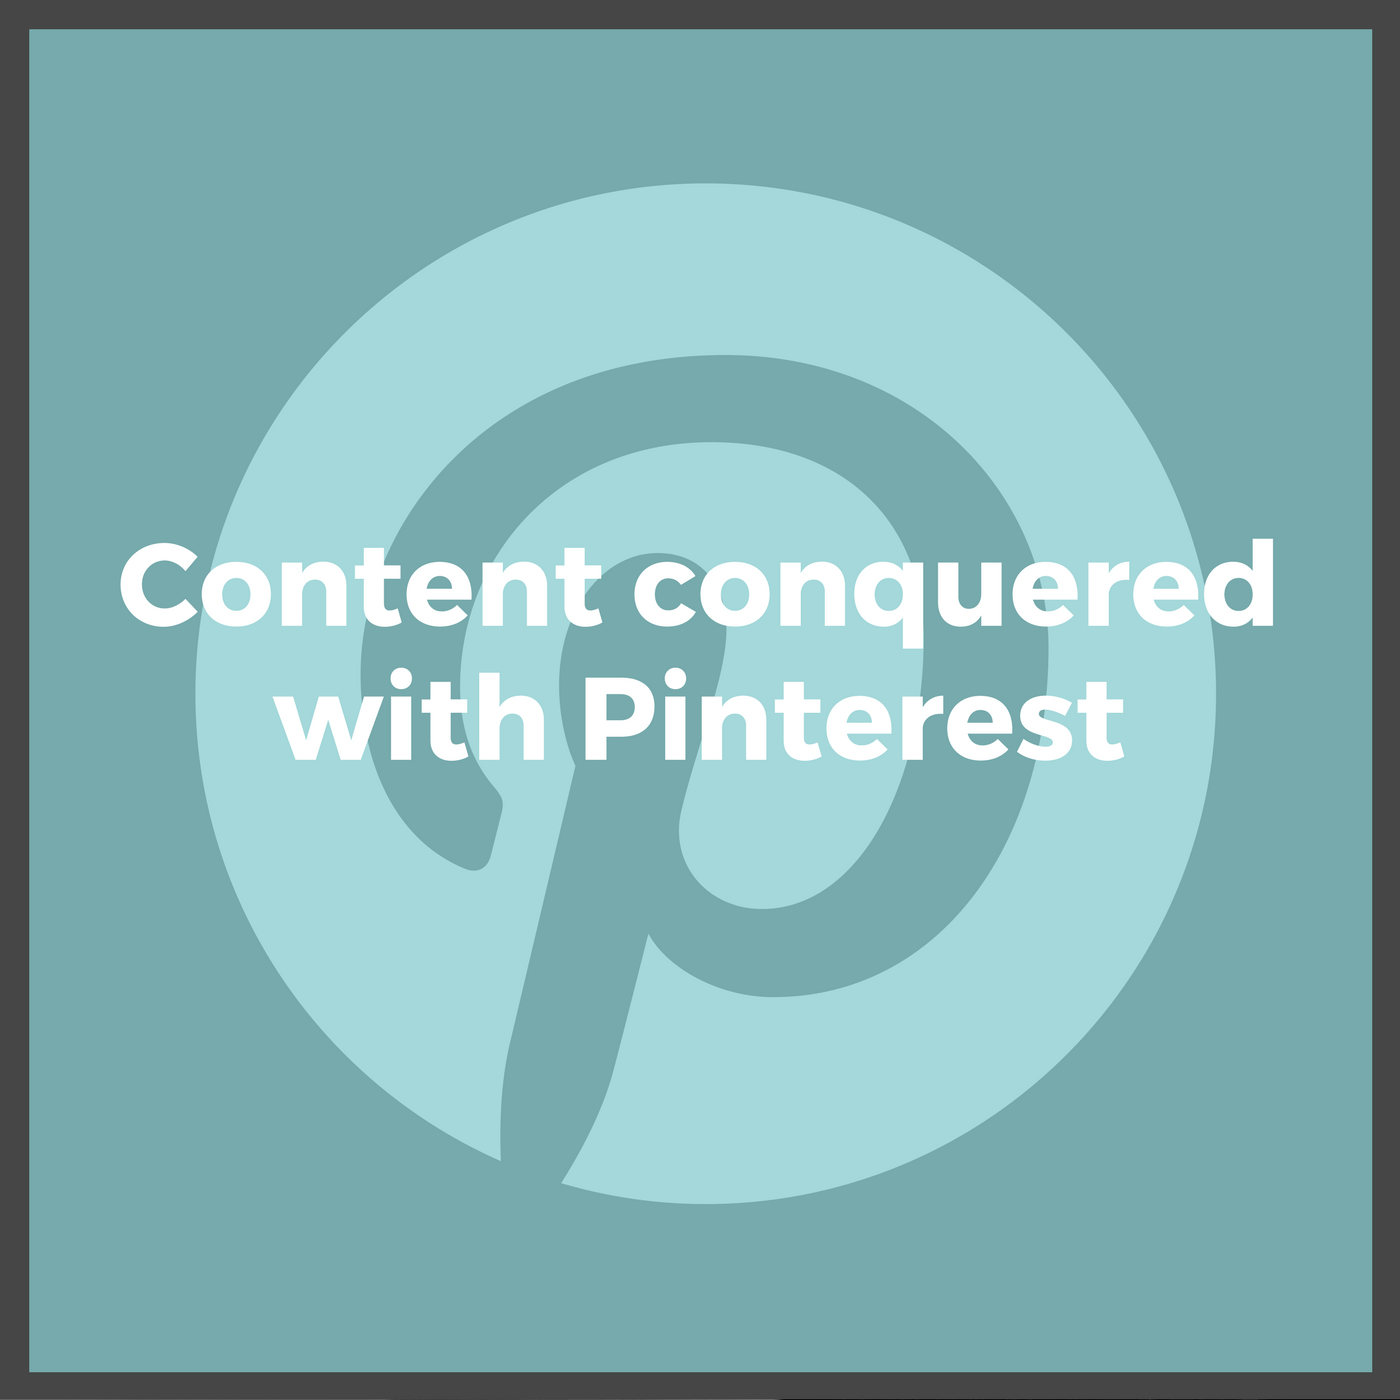 Content Conquered with Pinterest